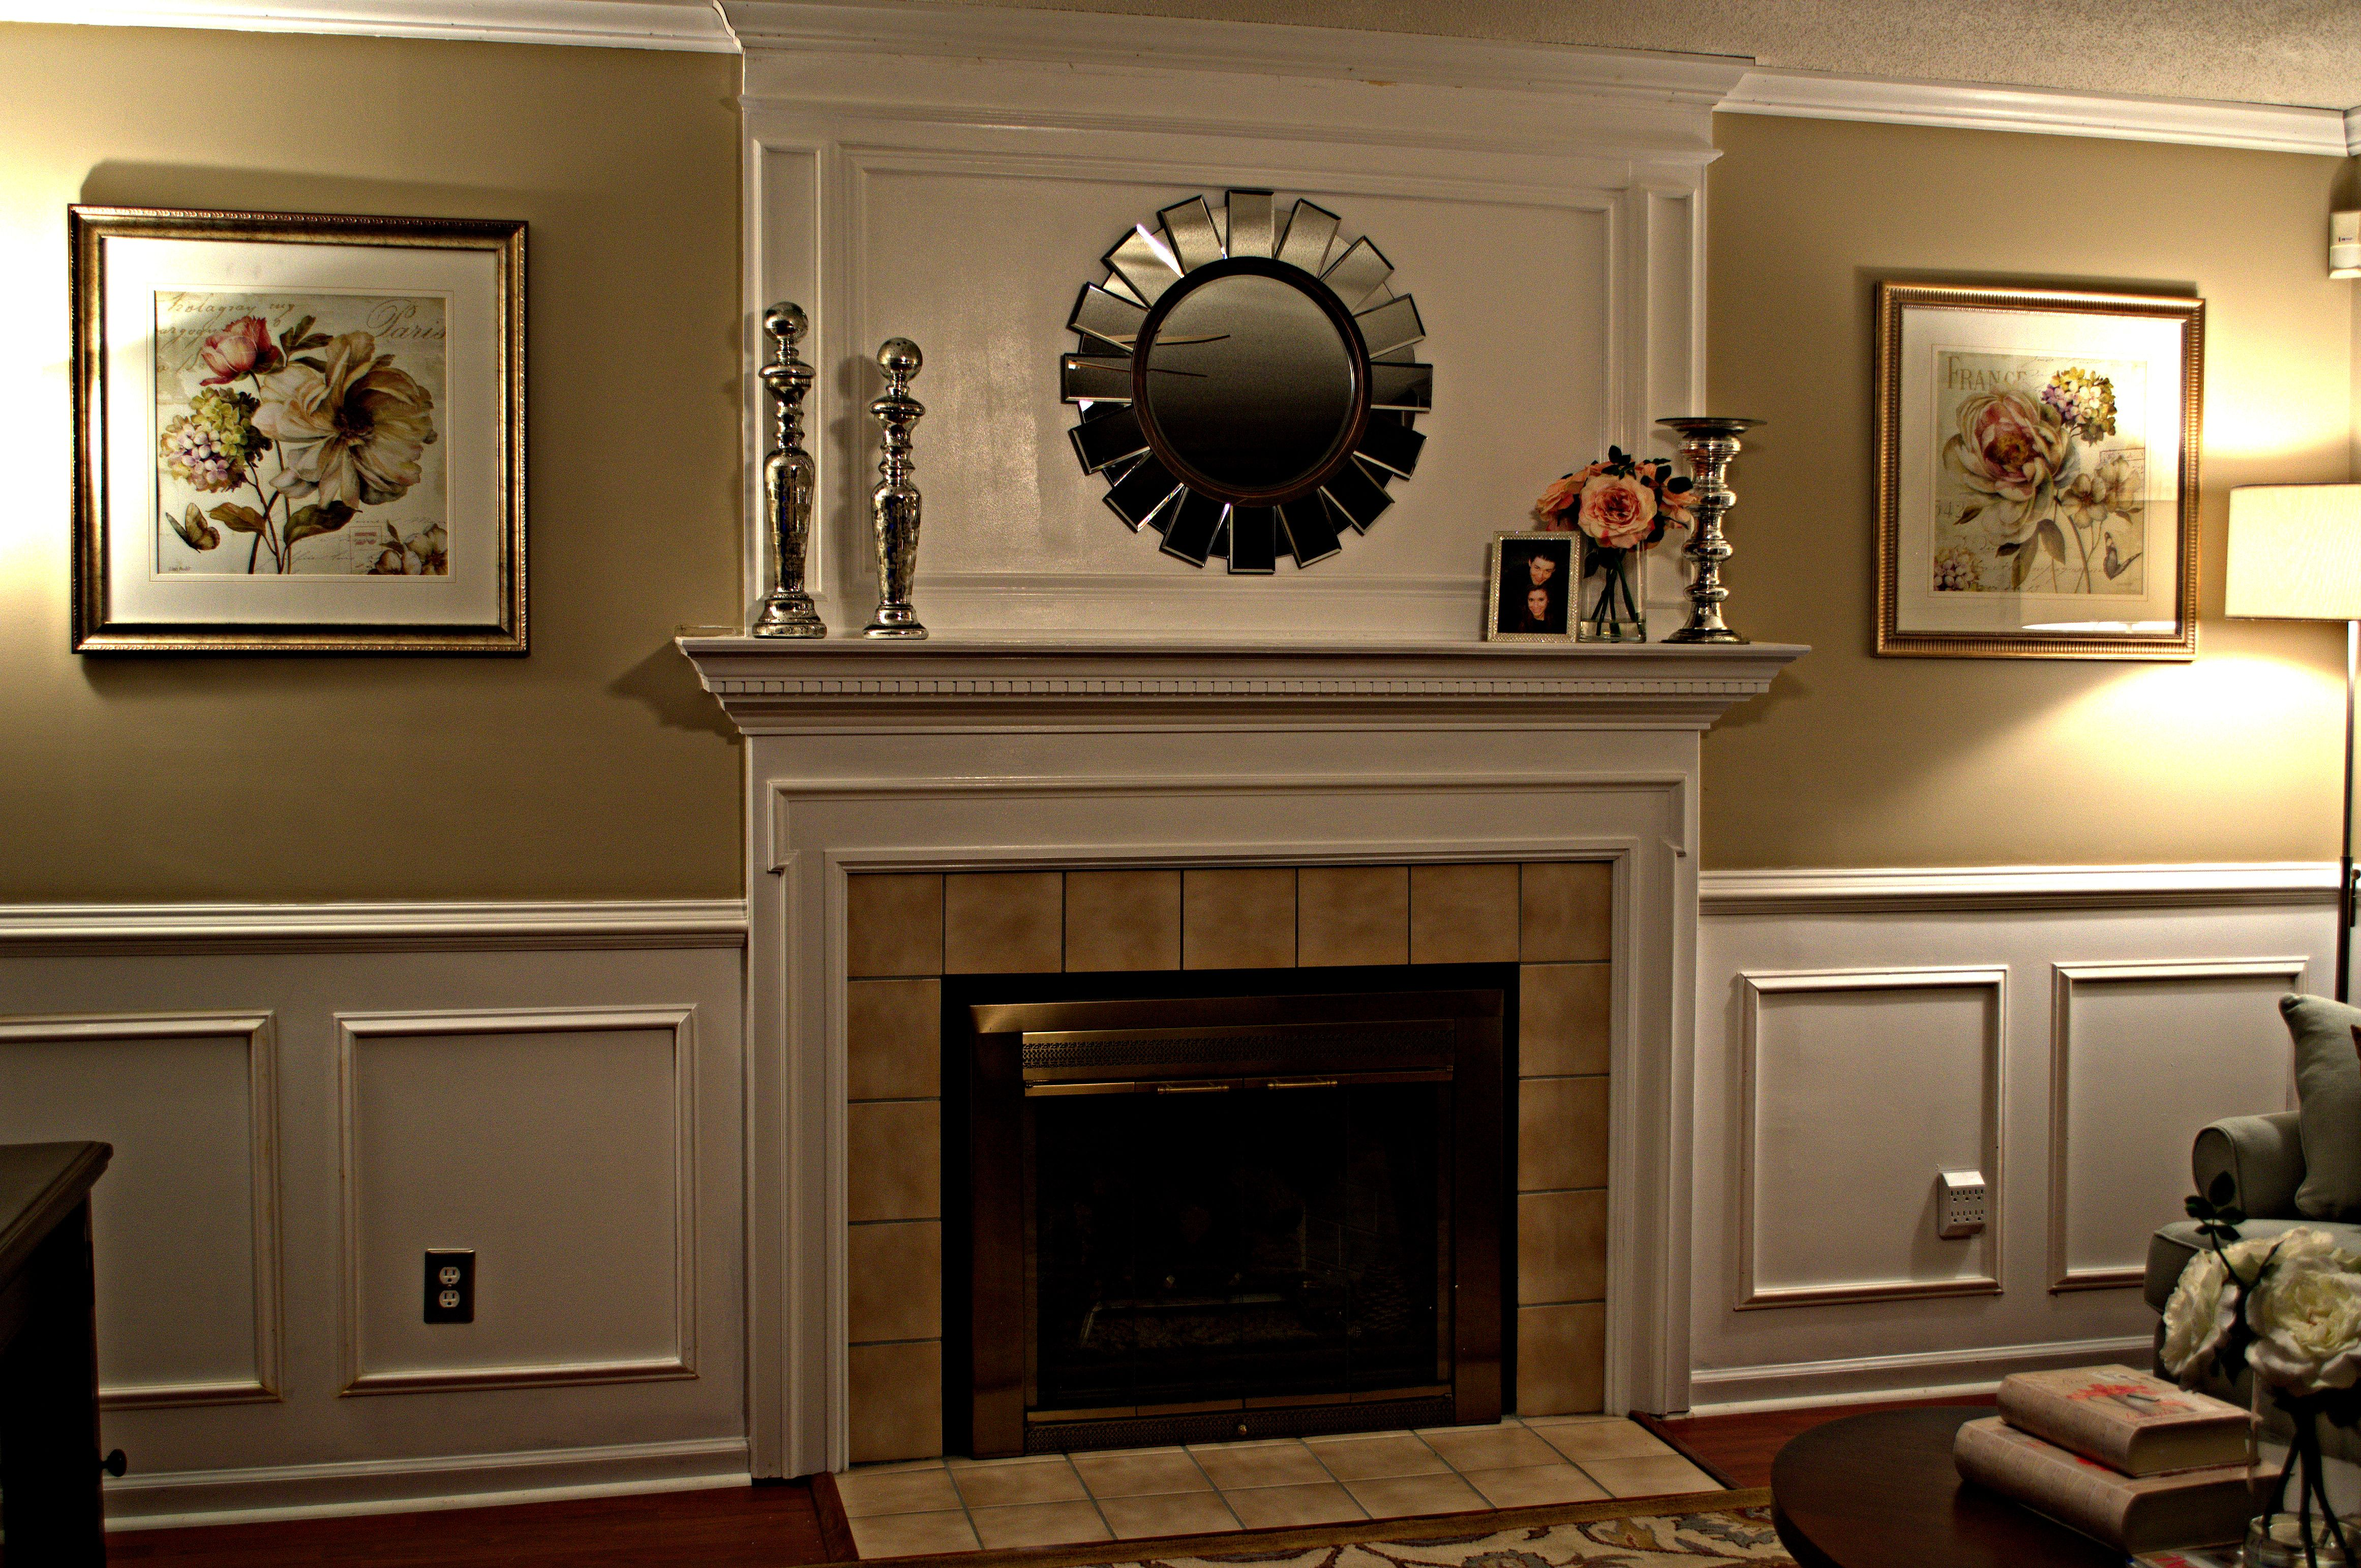 Paneling above fireplace fireplace overmantle Paneling makeover ideas